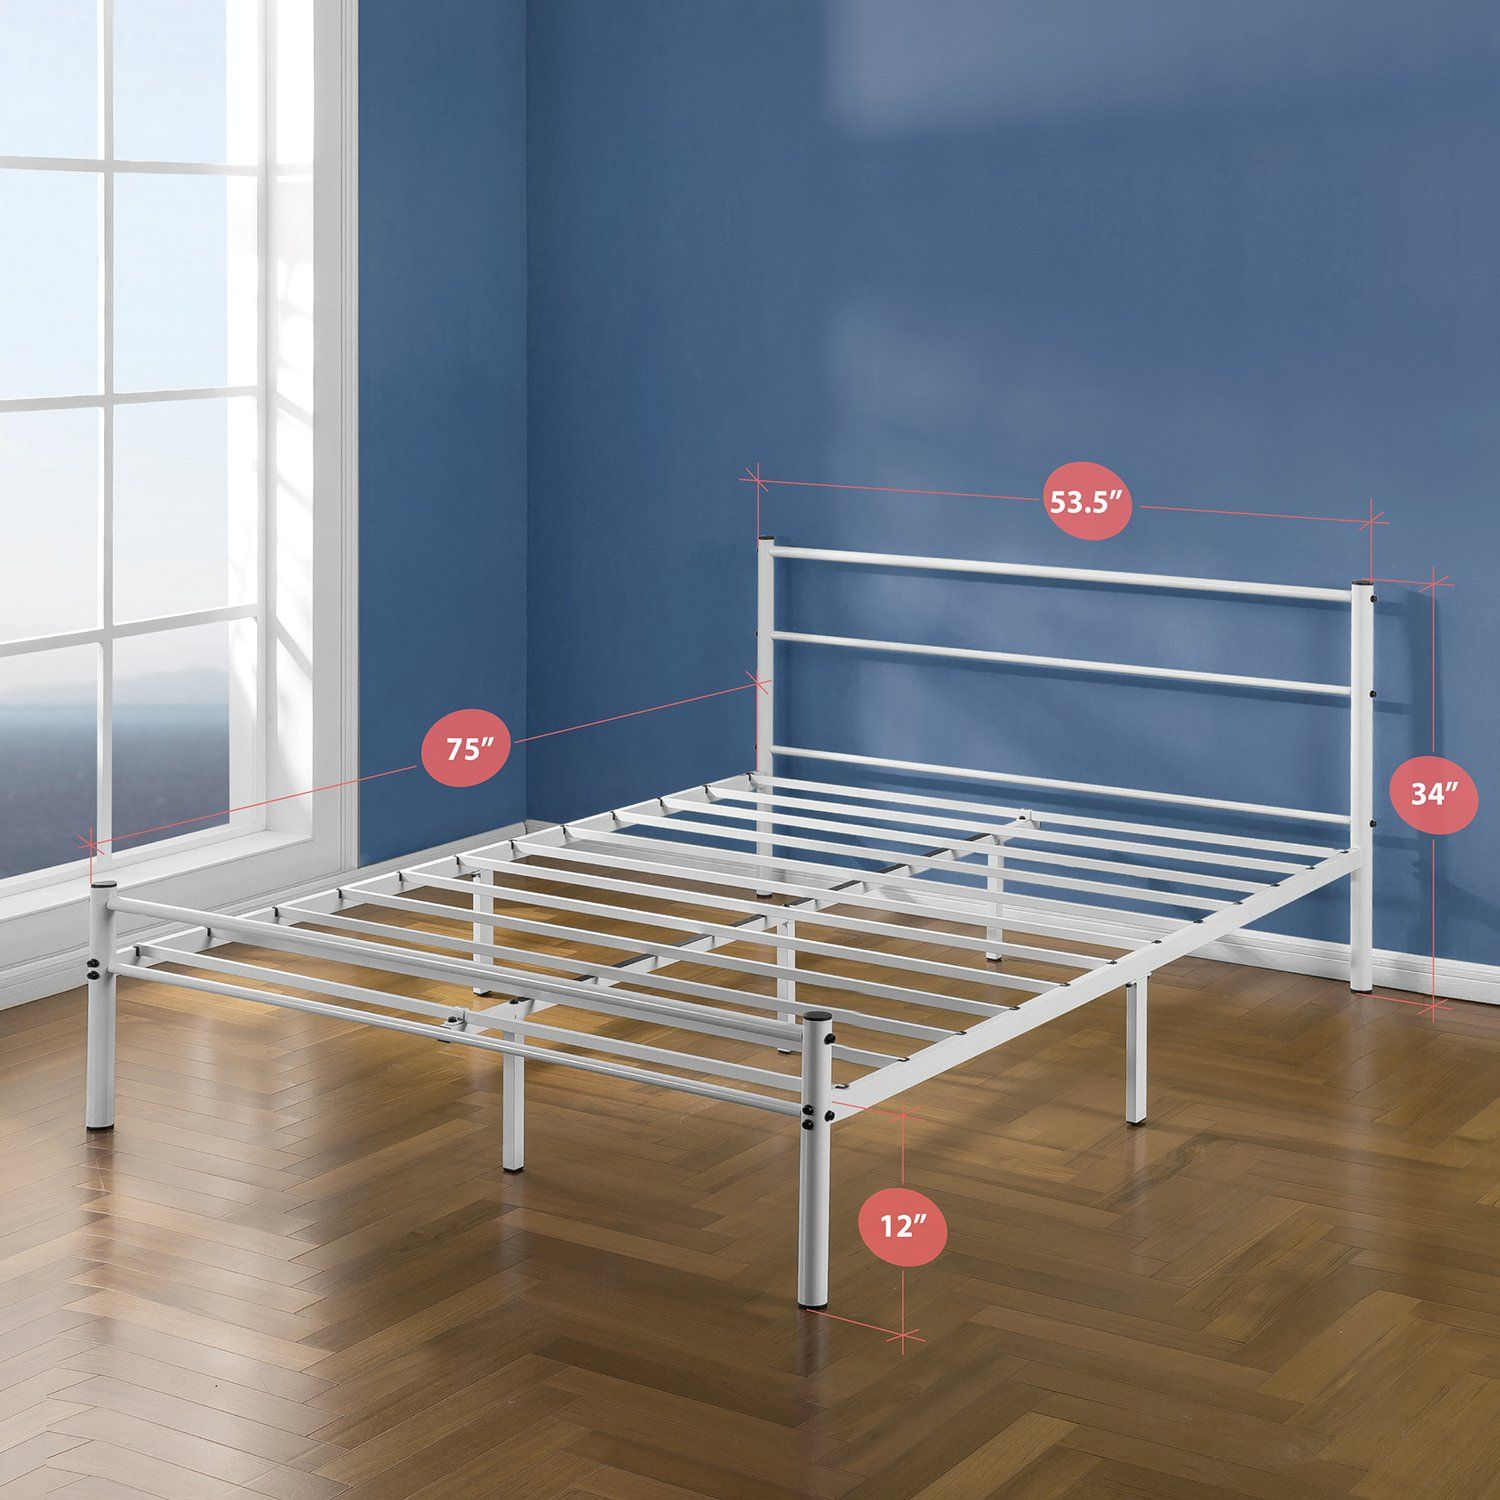 Zinus 12 Inch White Metal Platform Bed Frame With Headboard And Footboard Full Affiliate Bedfr Metal Platform Bed Platform Bed Frame Headboard And Footboard